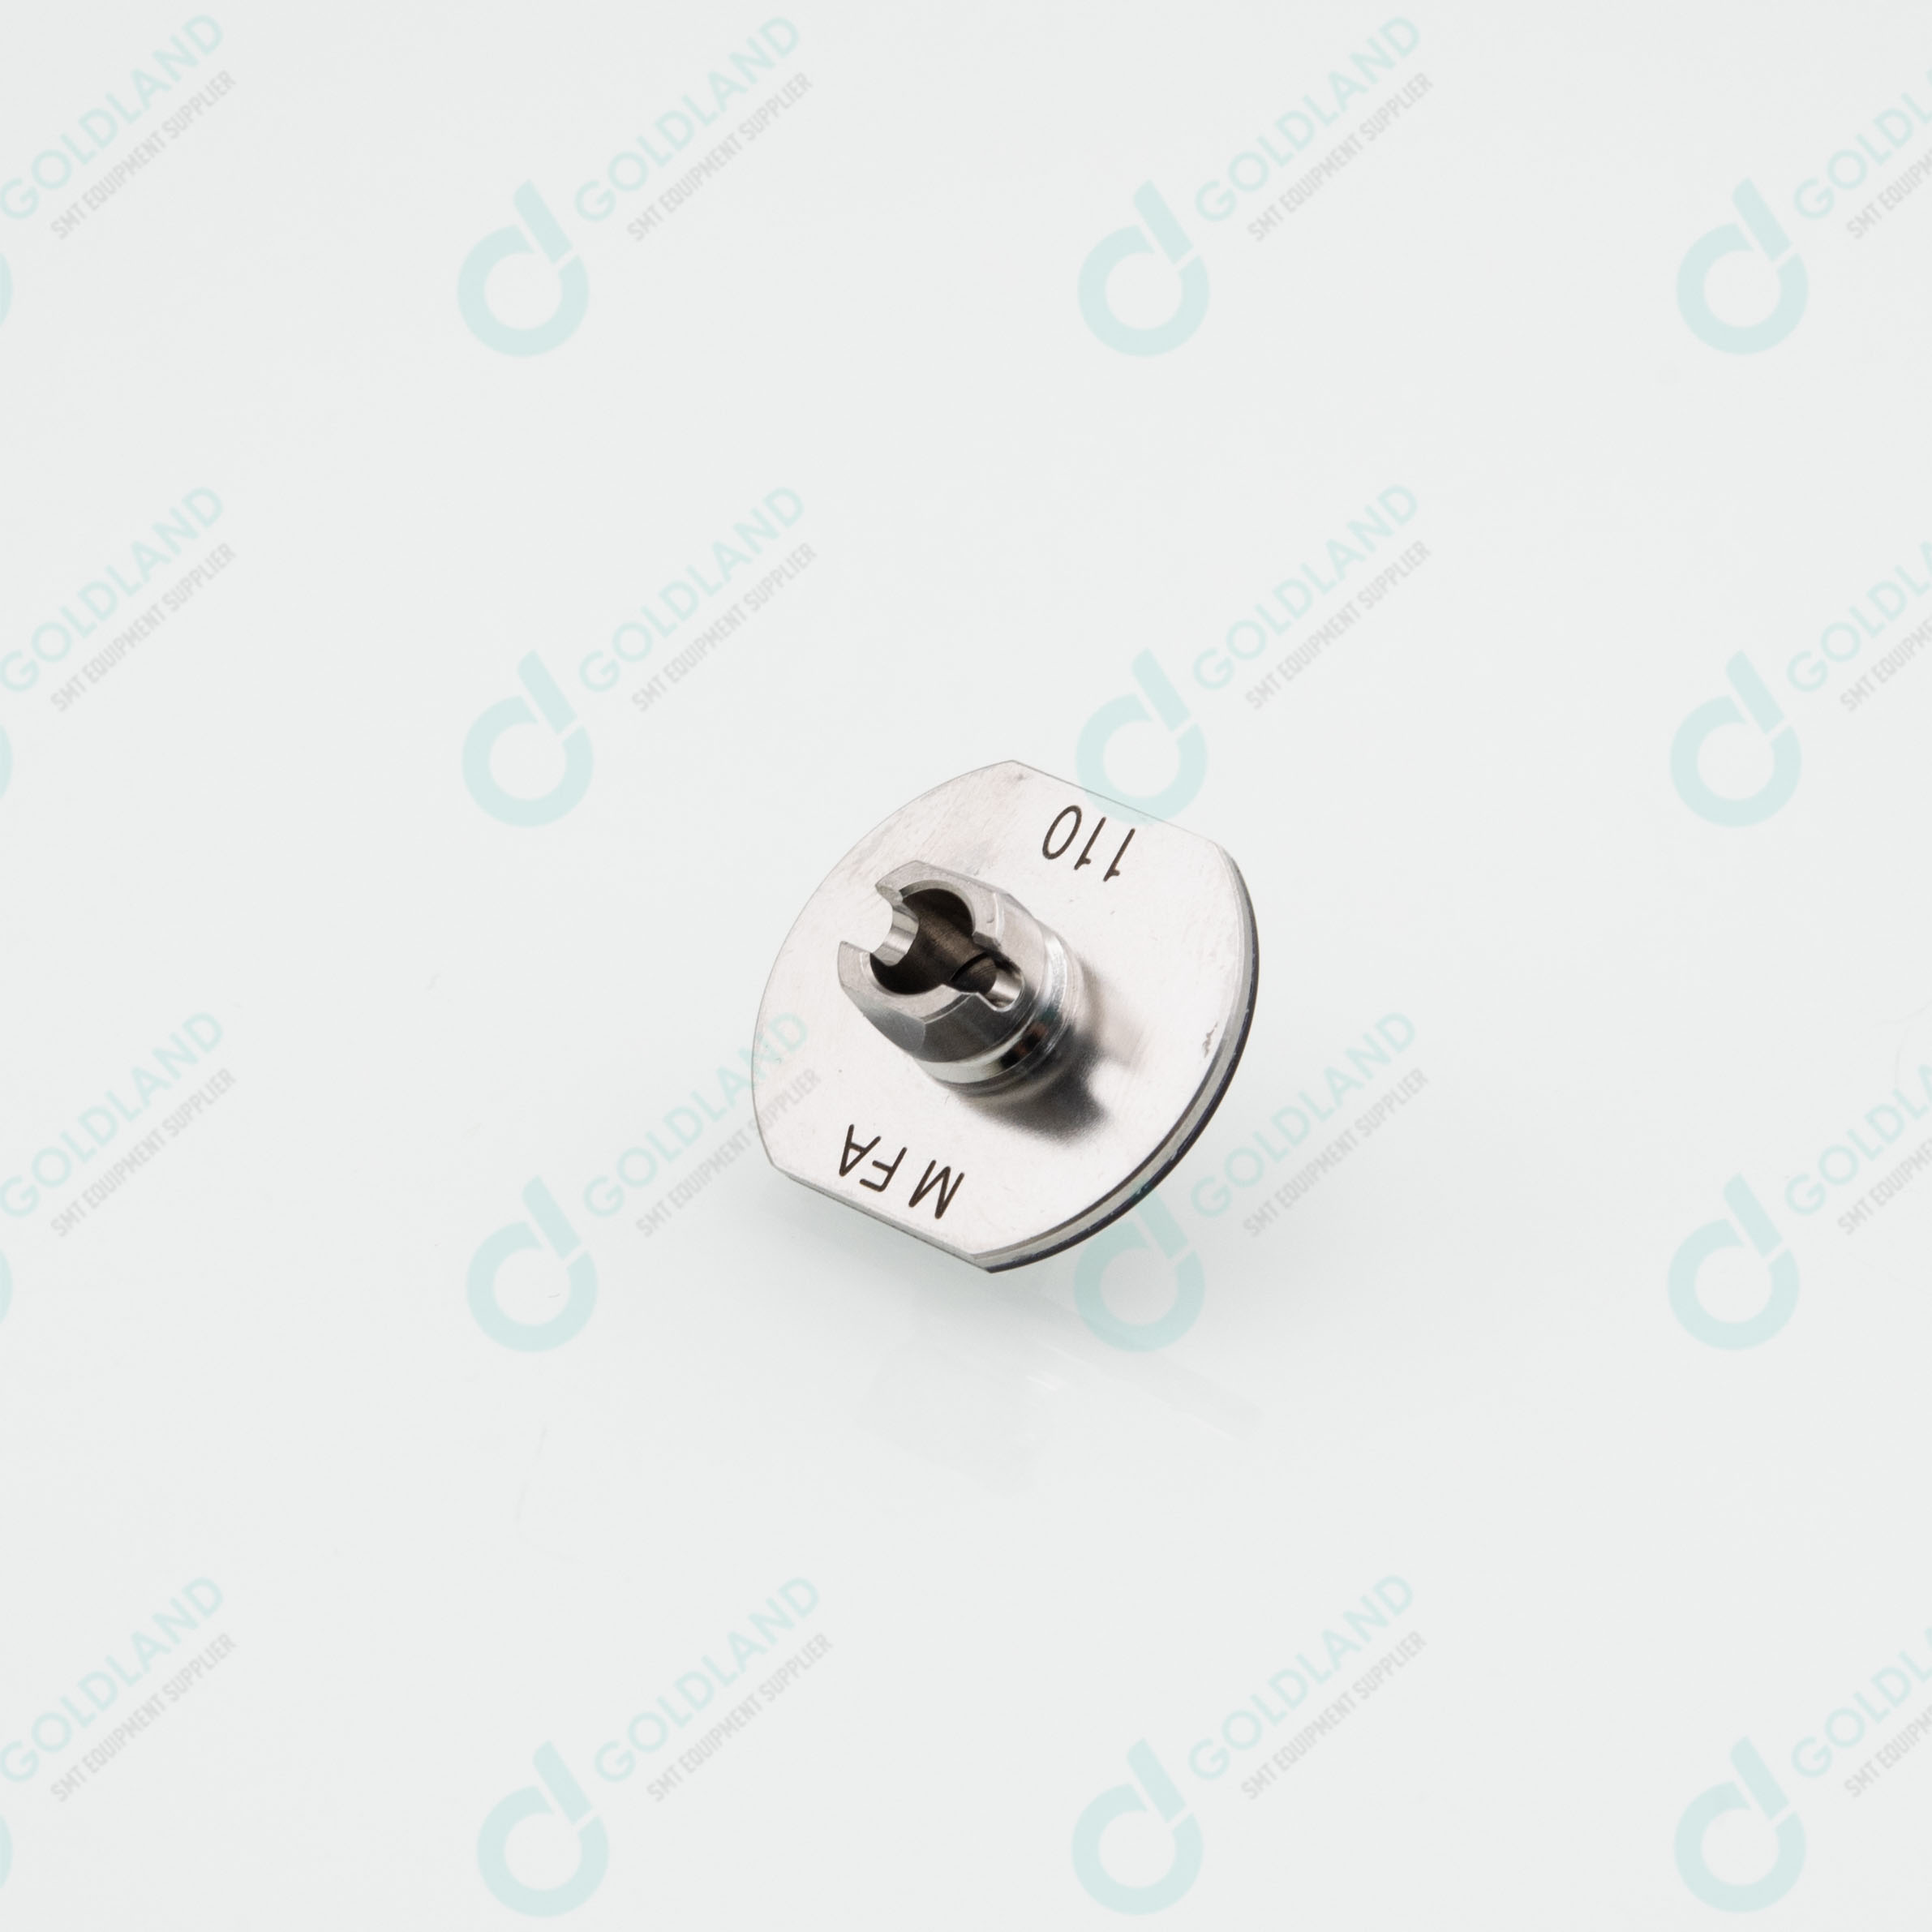 KXFX0383A00 Panasonic 110 Nozzle for Panasonic smt machine parts